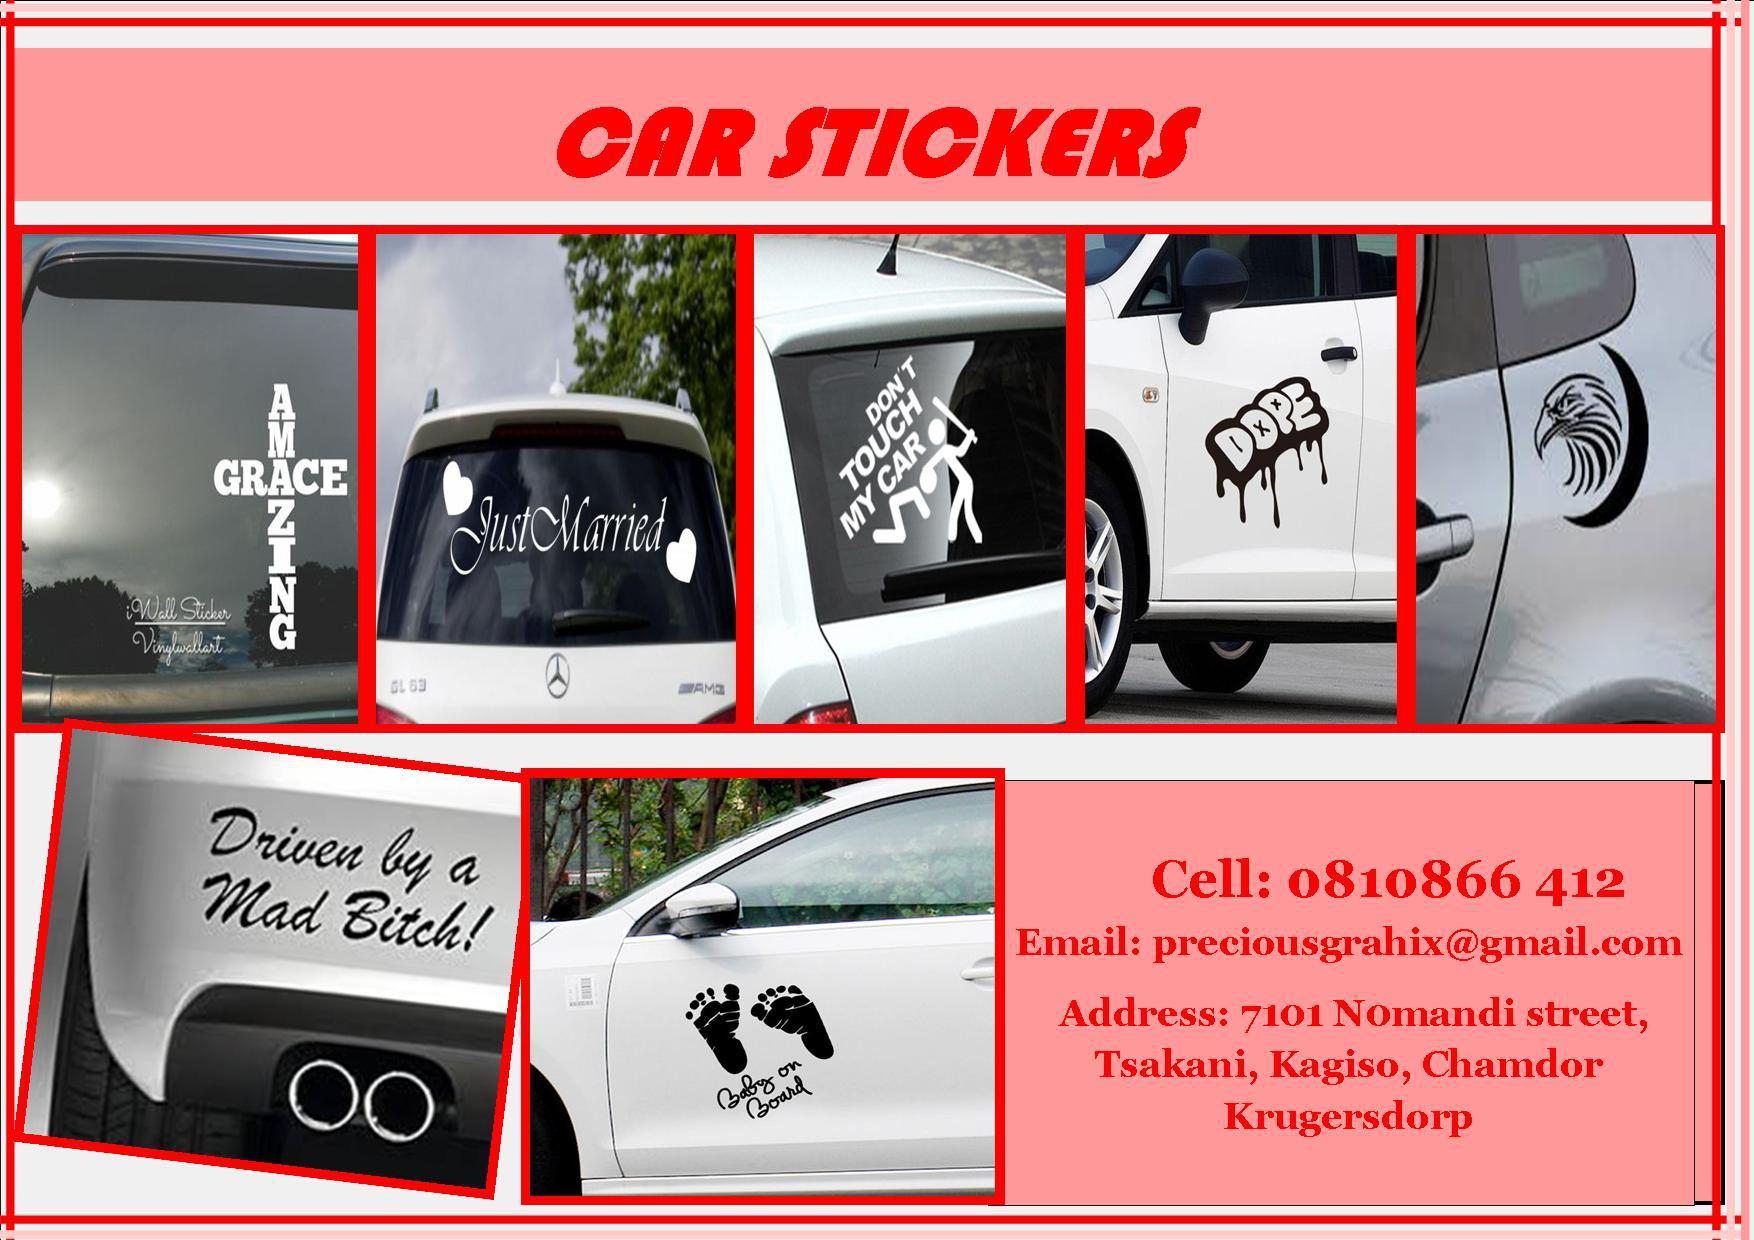 Print personalized car stickers johannesburg public ads services